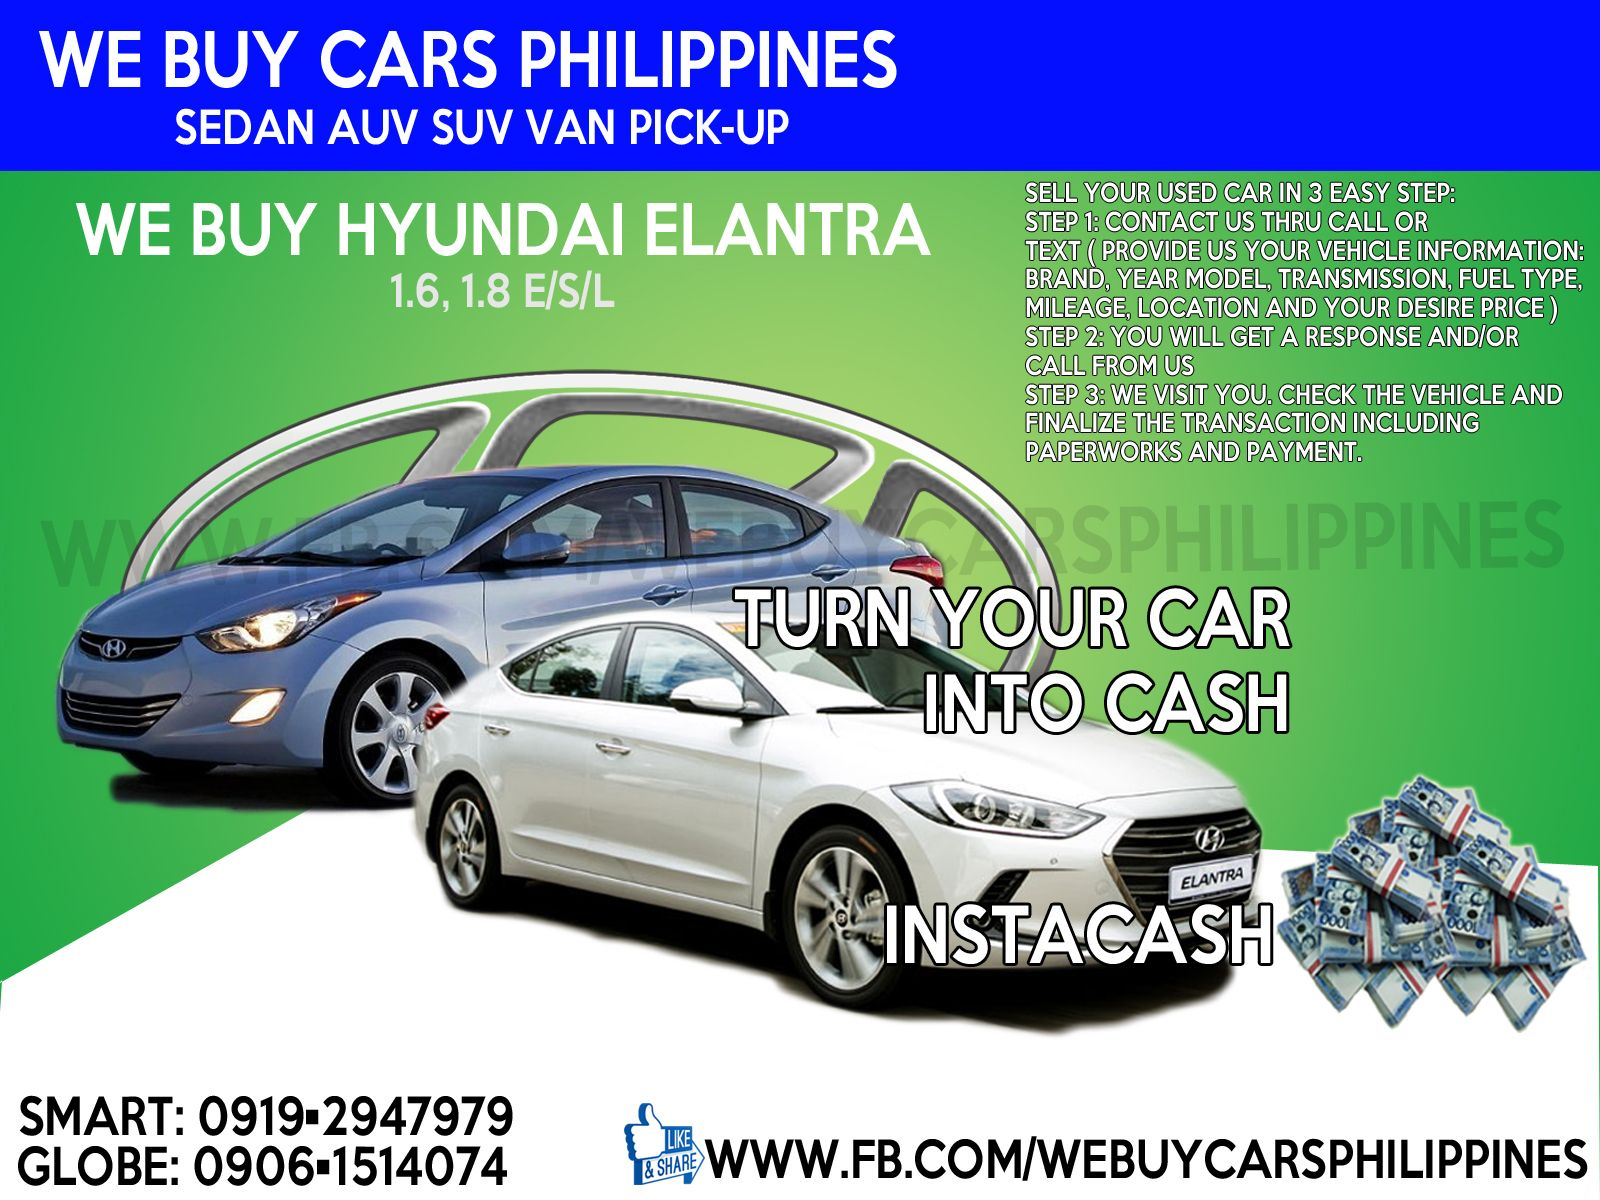 14 best BUYING USED CARS PHILIPPINES images on Pinterest ...